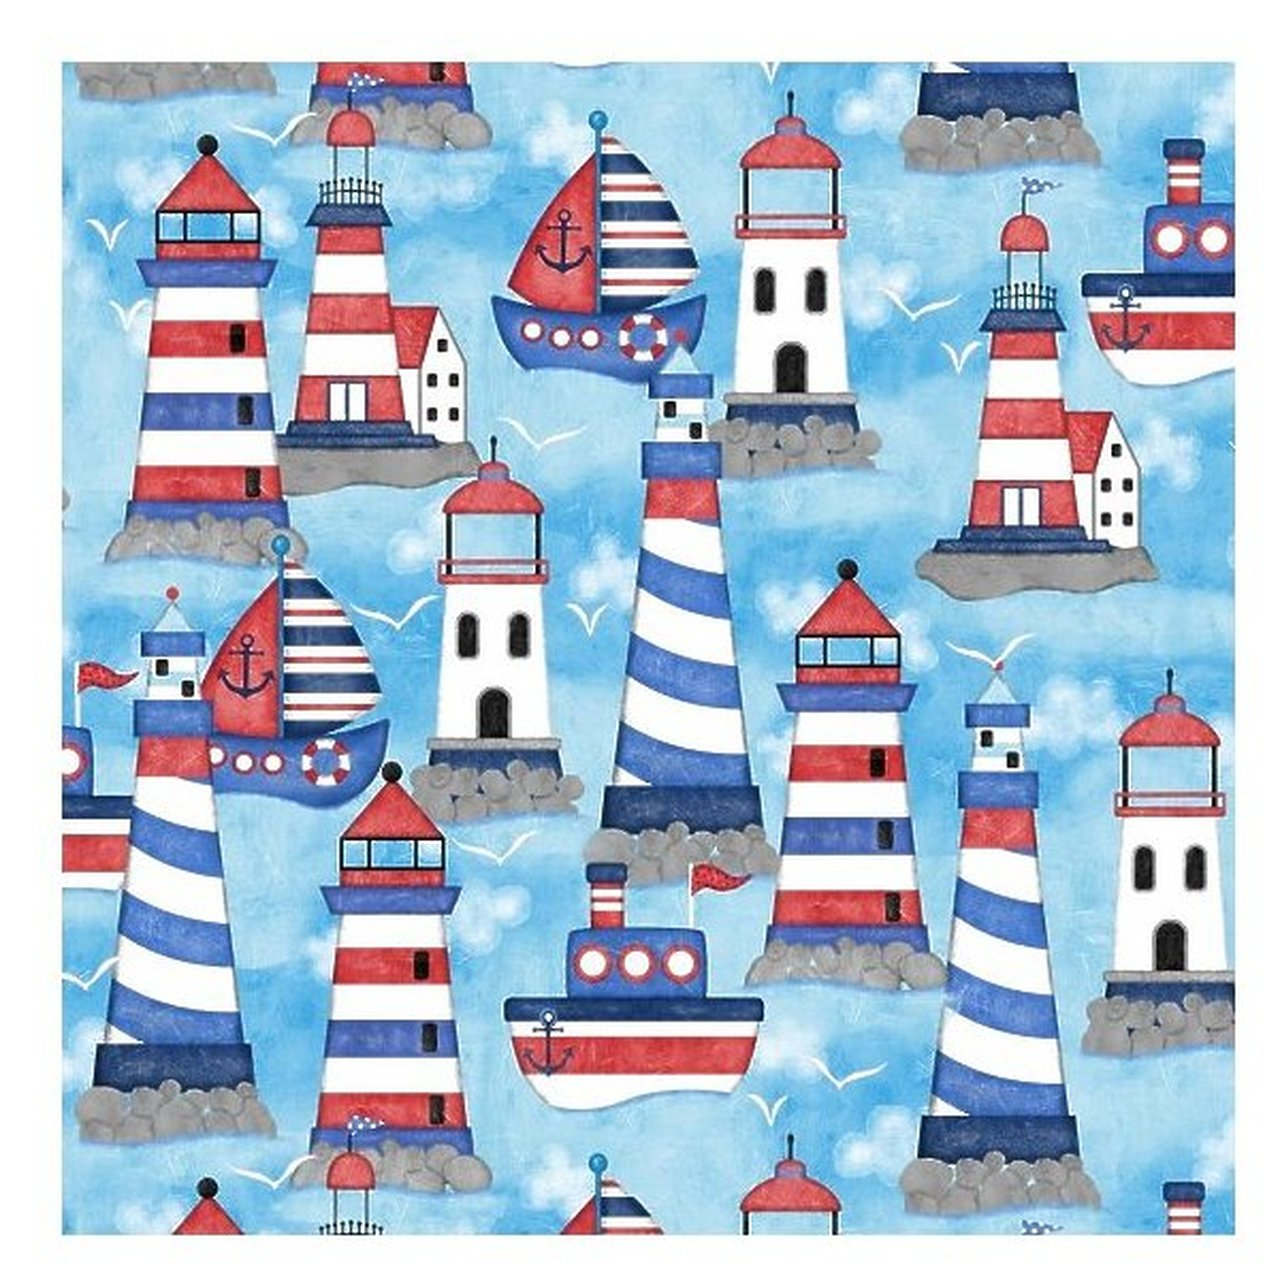 Red White and Starry Blue Quilt Labels 23 X 44 by Studio E